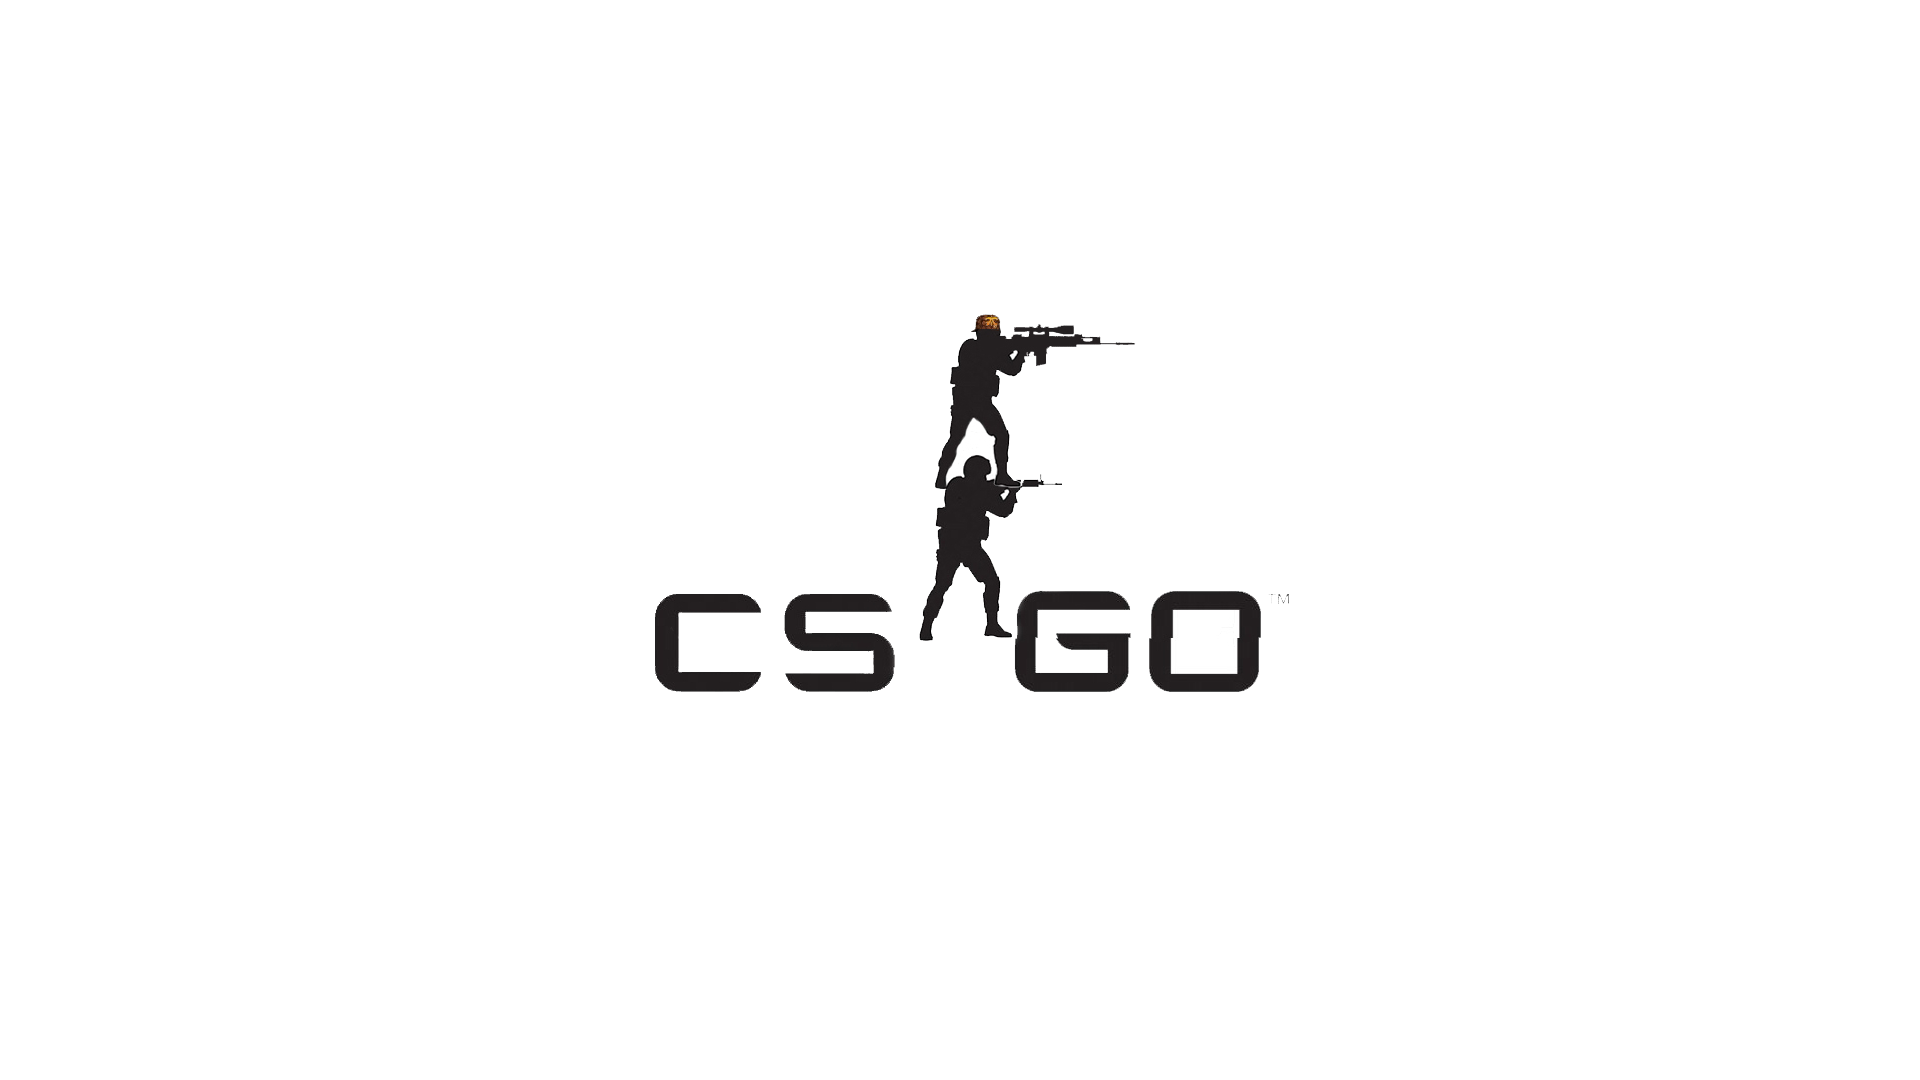 Csgo Logo Png images collection for free download.